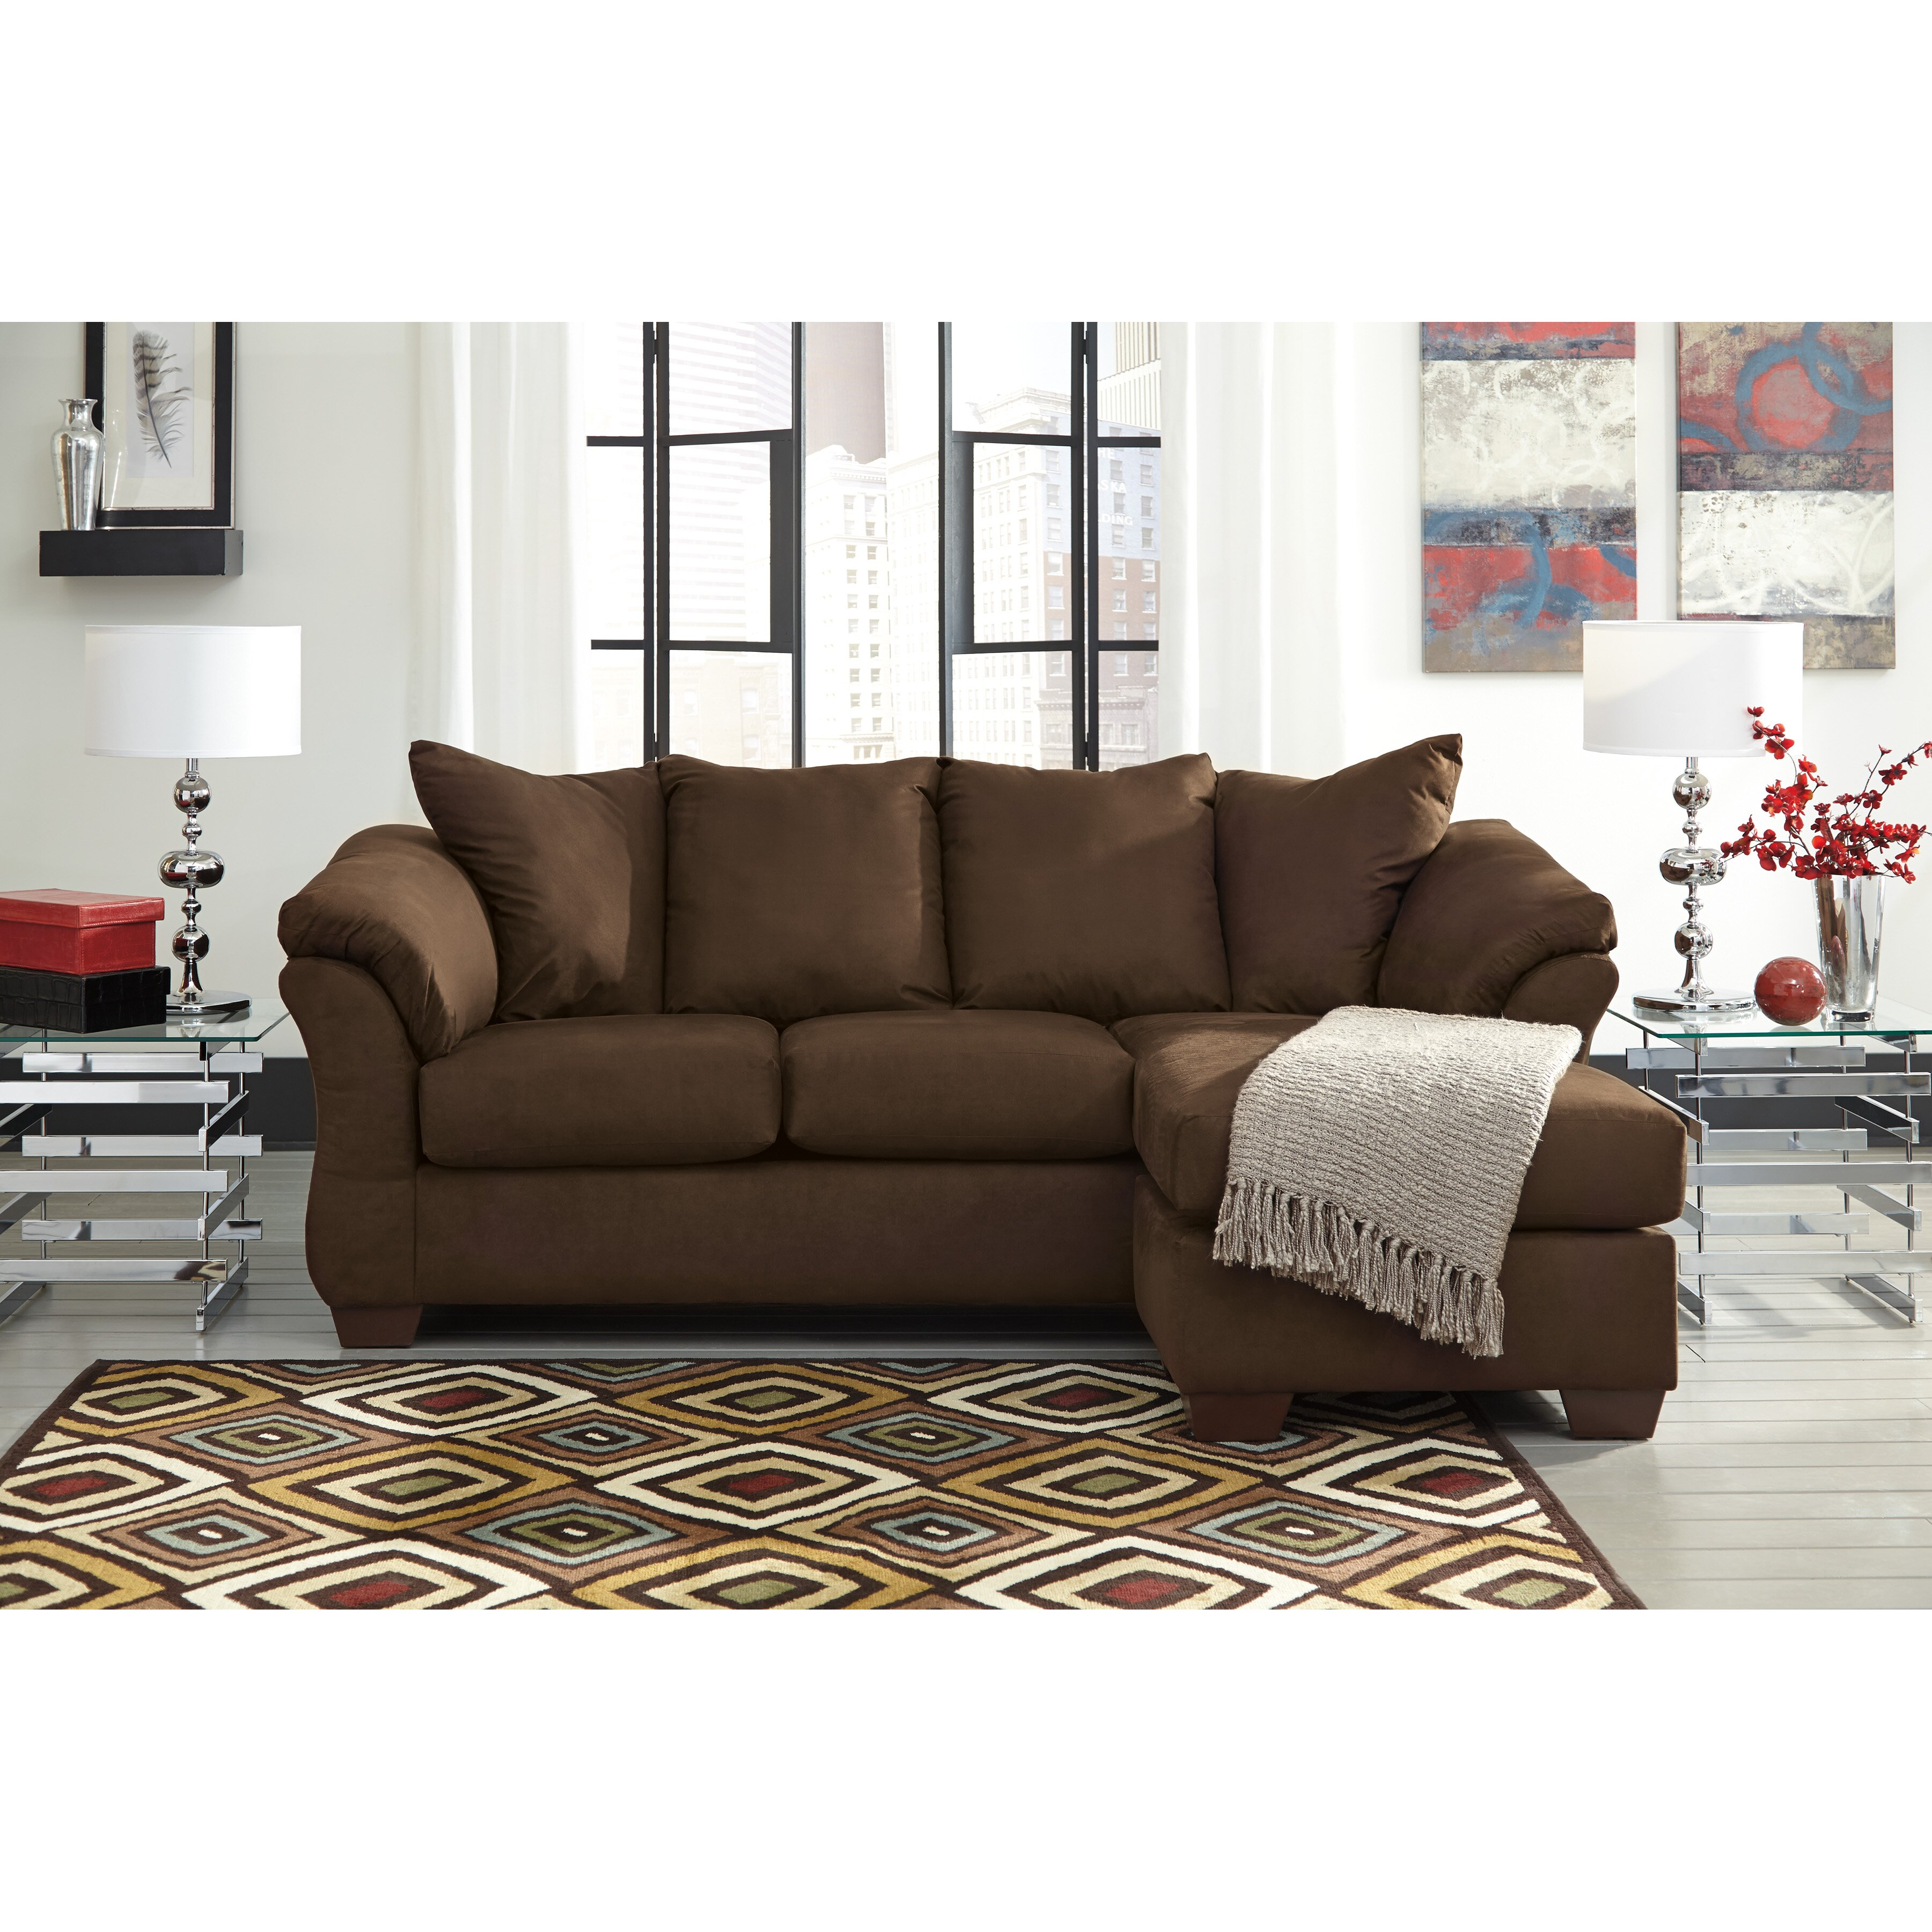 Sectional Sofas By Ashley Furniture: Signature Design By Ashley Darcy Sectional & Reviews